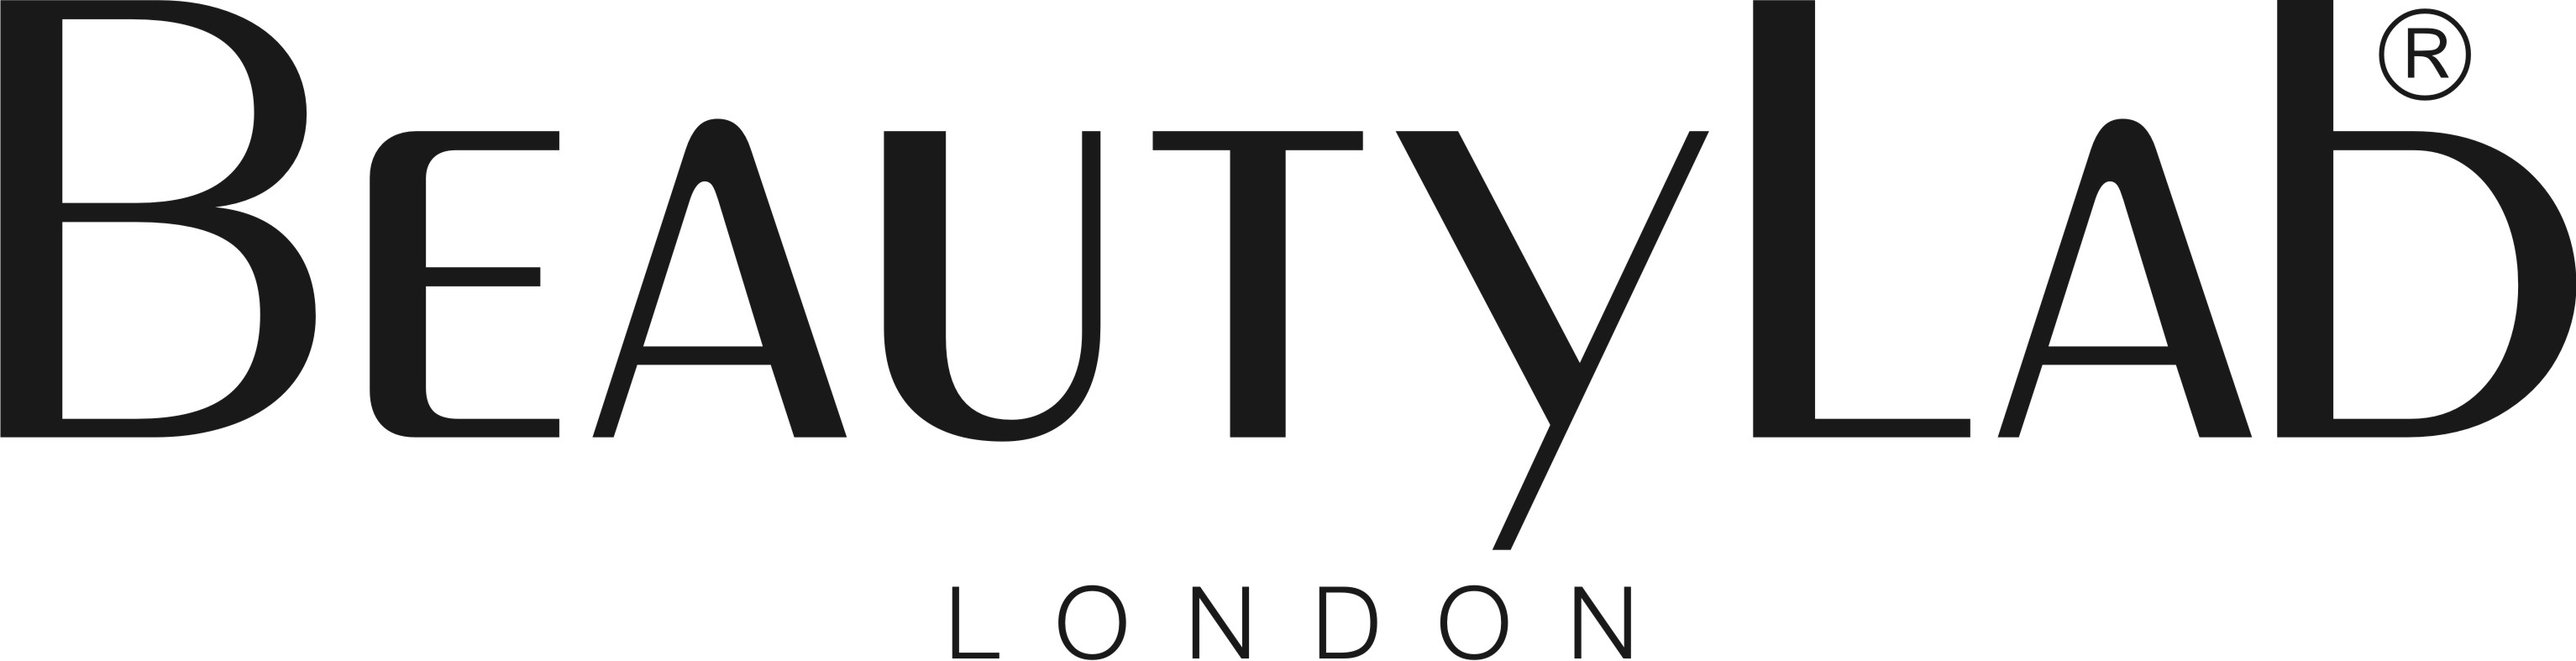 Beautylab london logo high rez 2015 v2jpg